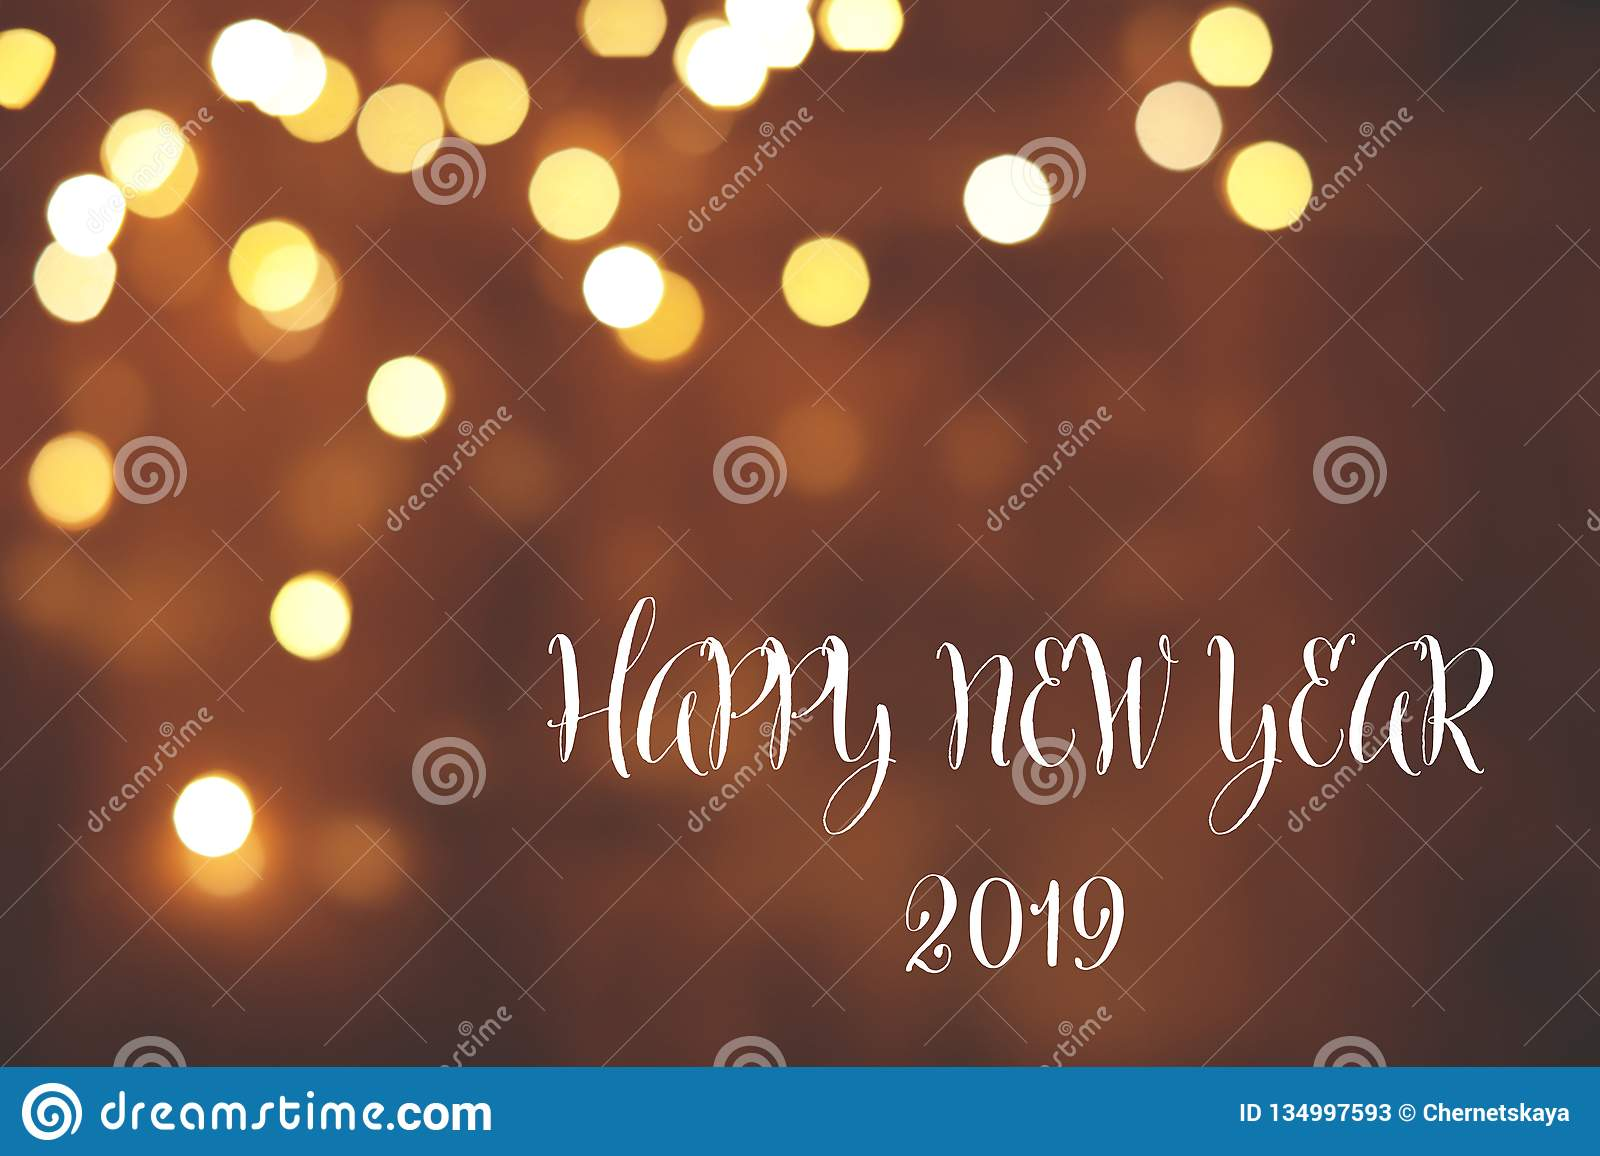 Message HAPPY NEW YEAR 2019 and bokeh effect on background, space for text.